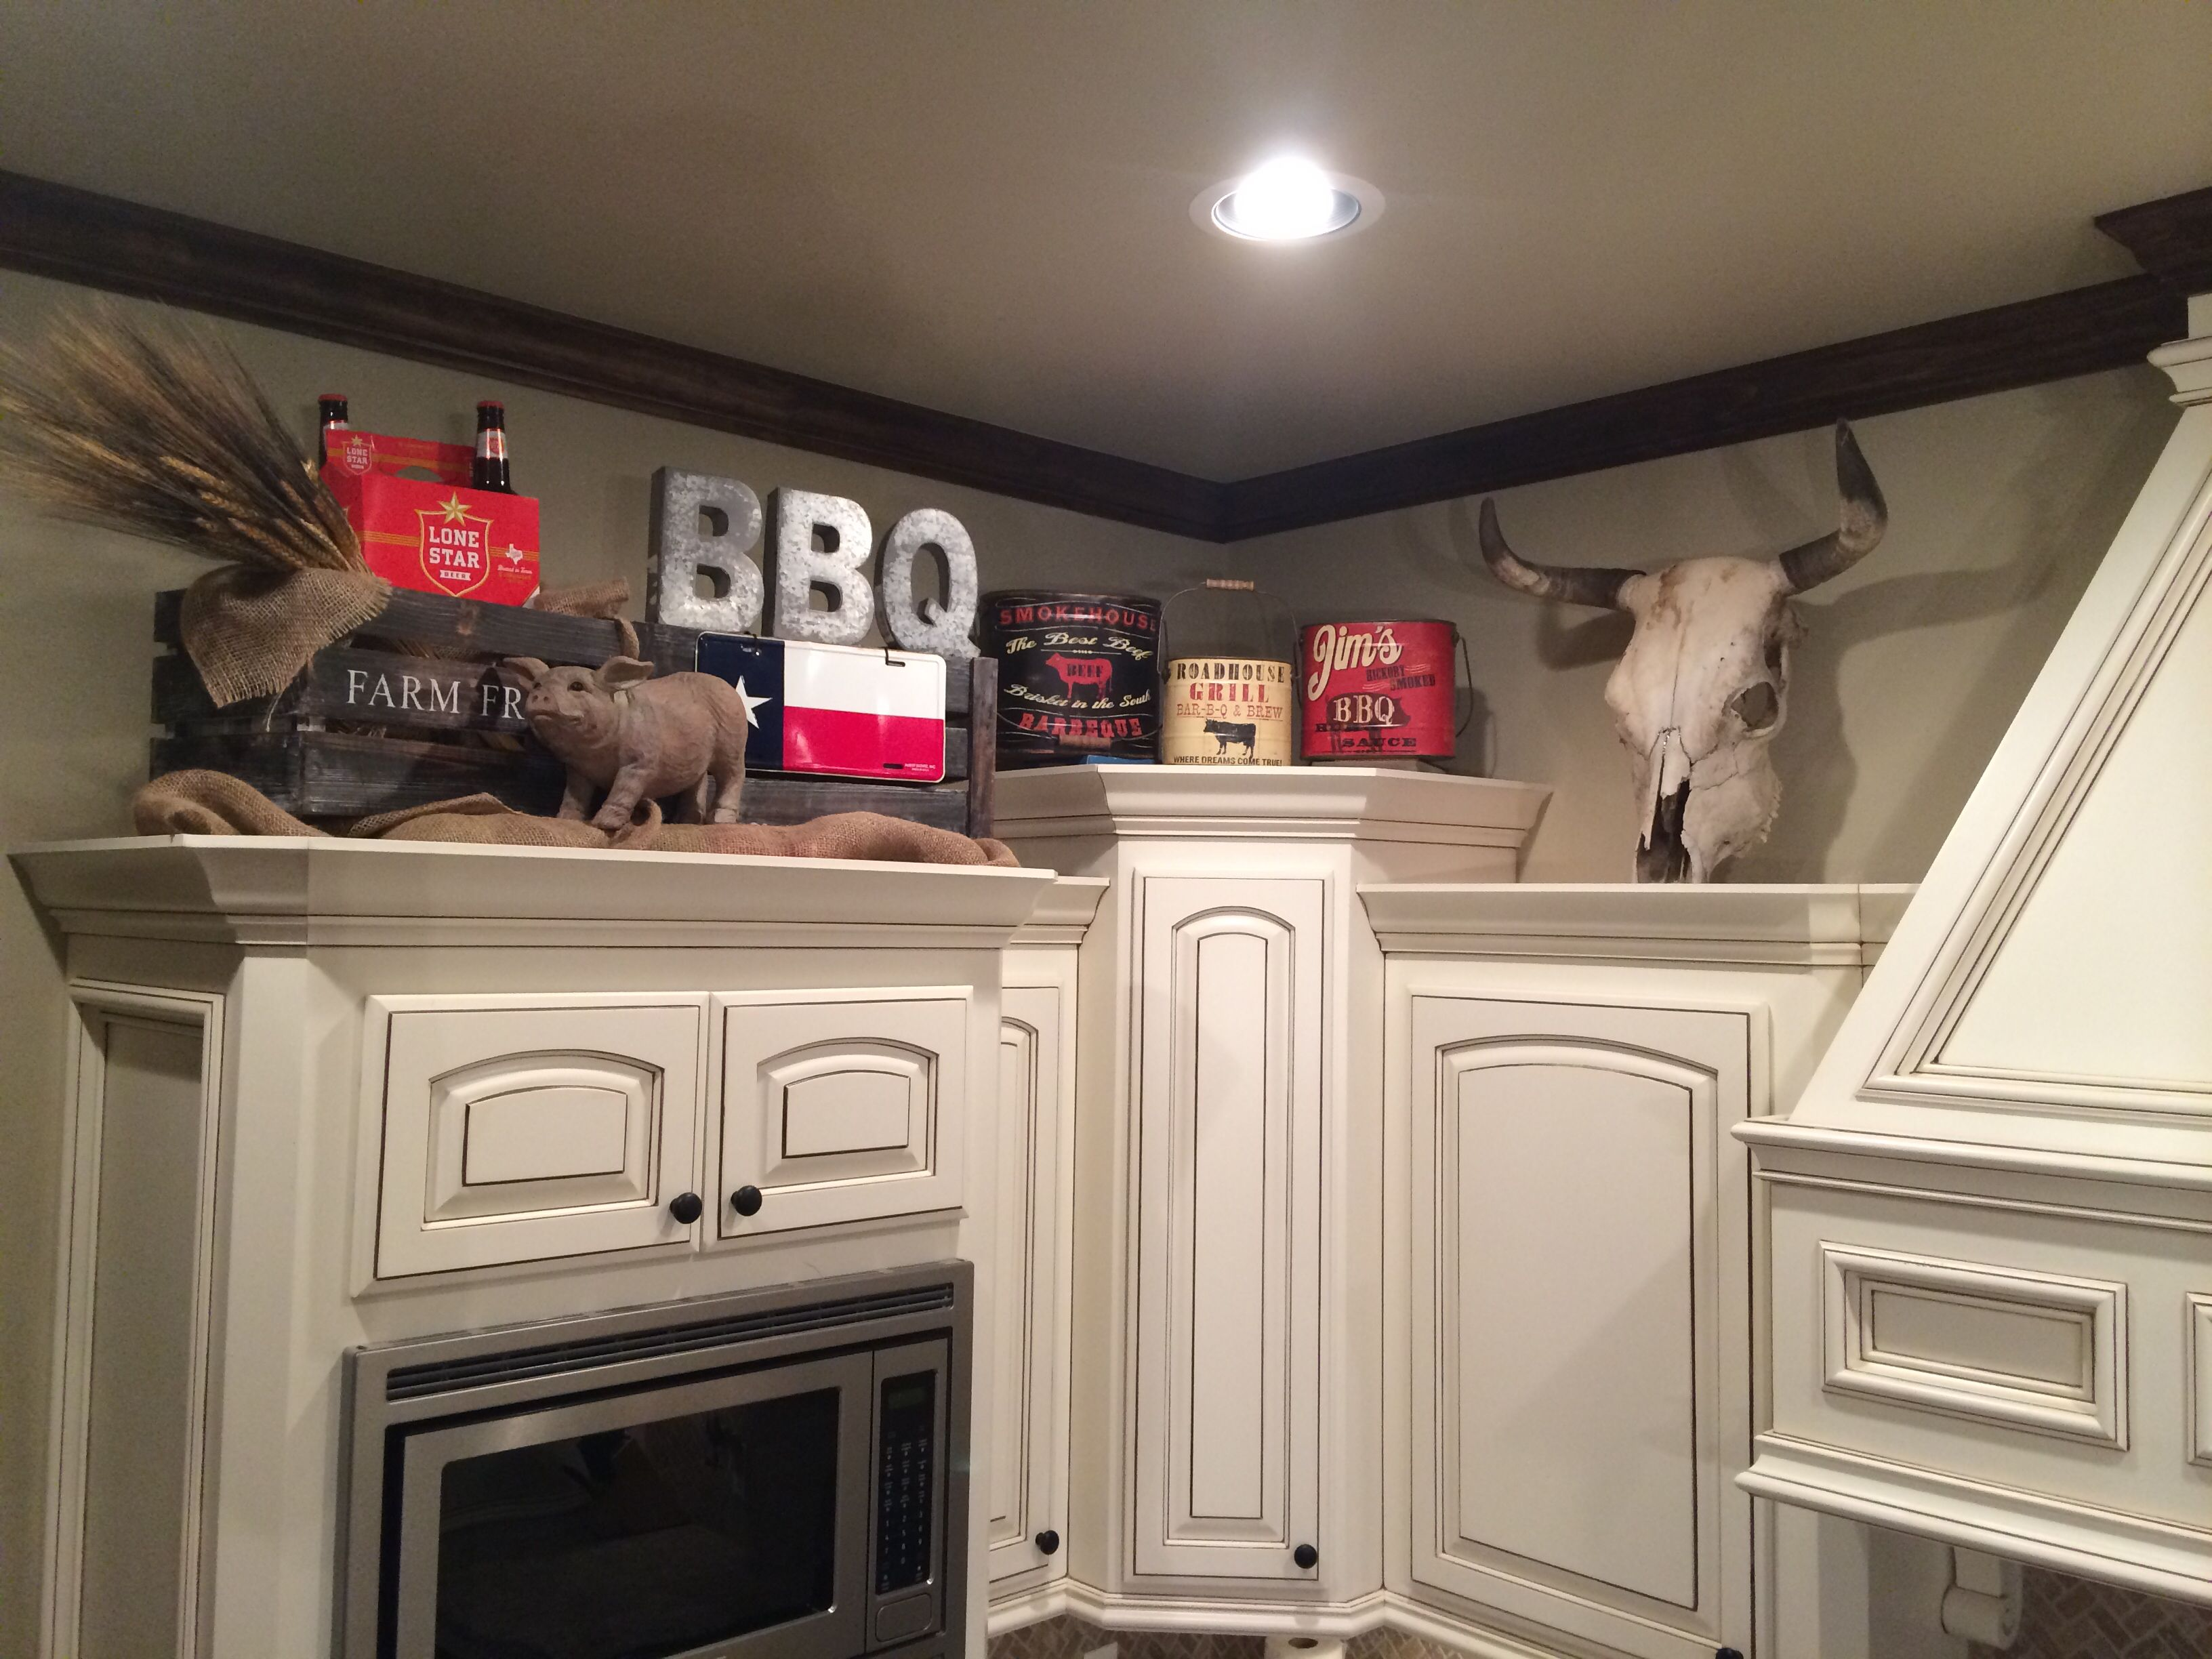 kitchen cabinets decor Texas BBQ decor Letters Michael s